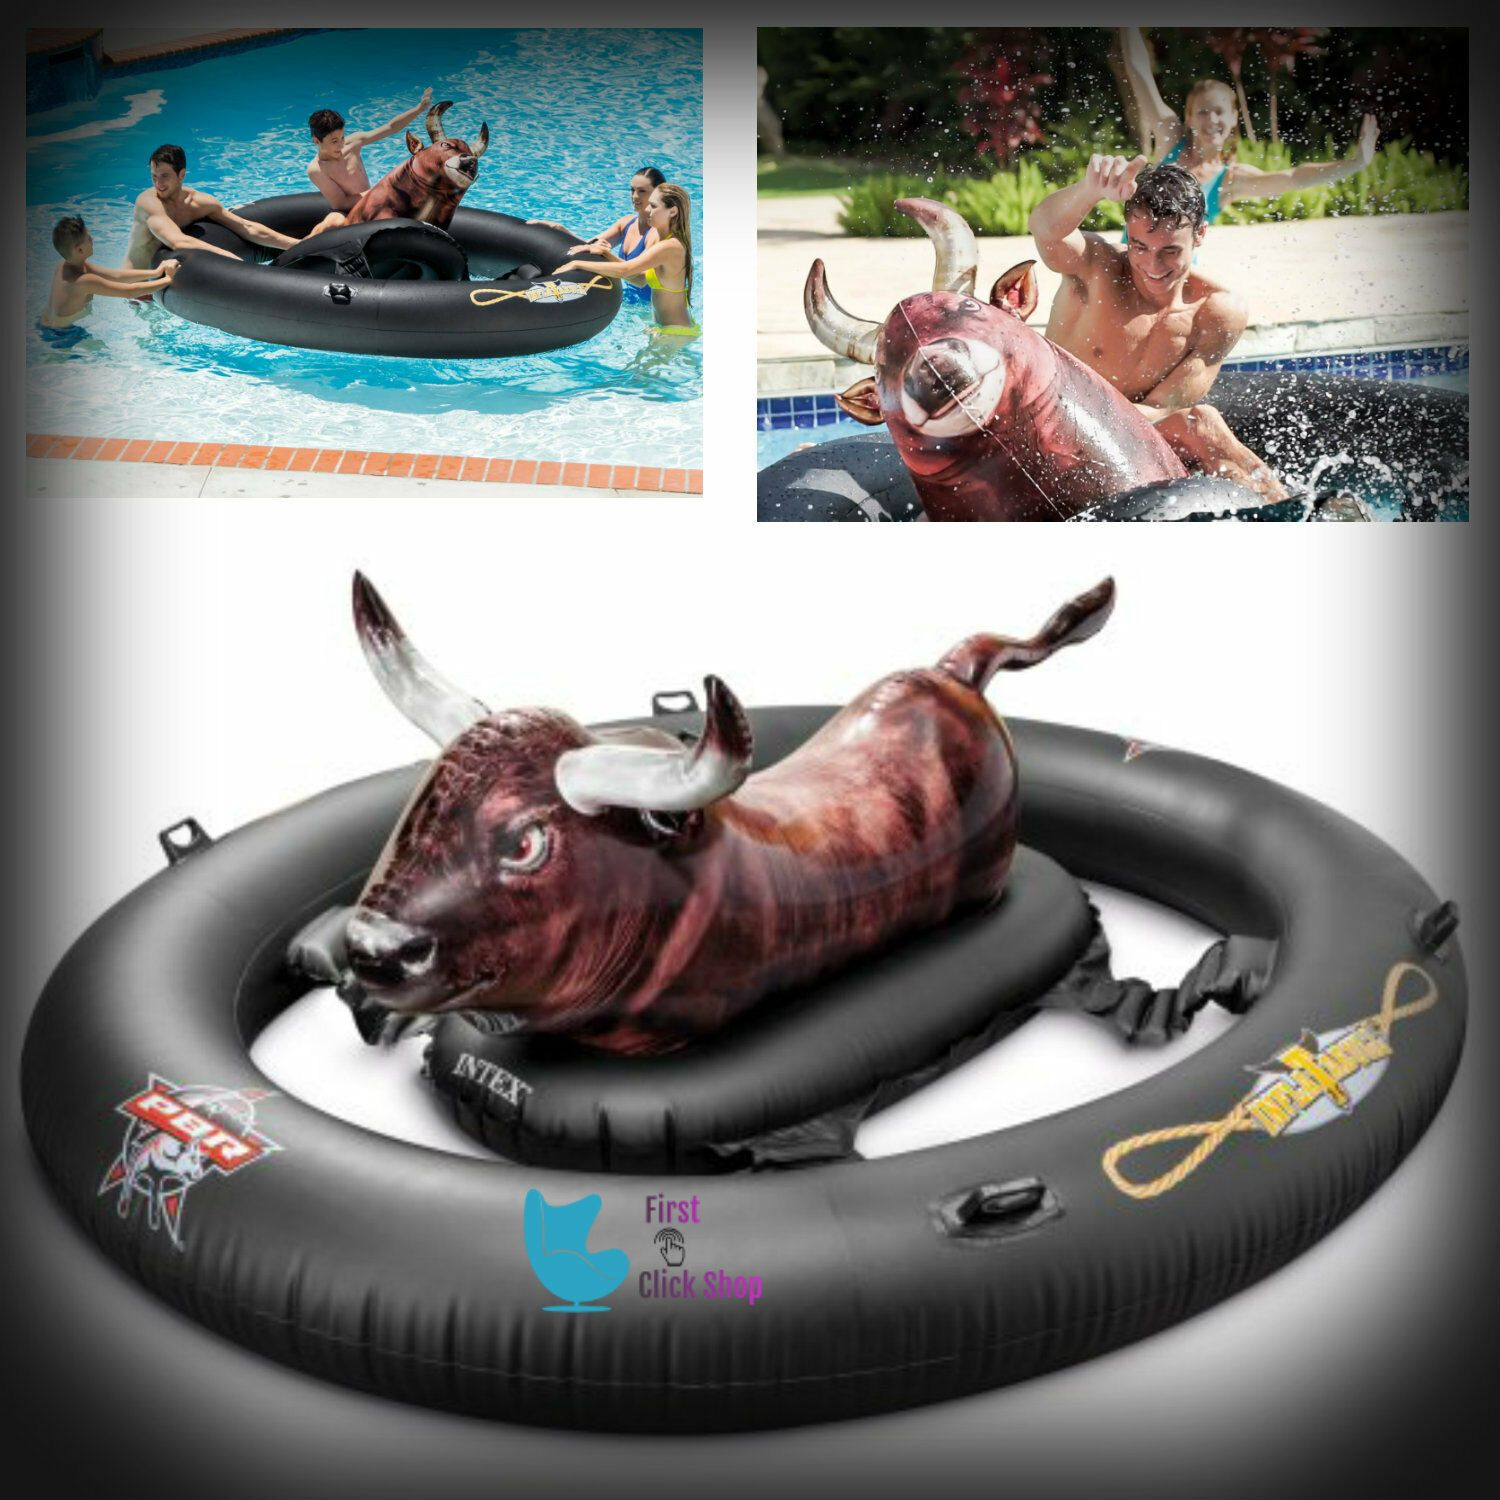 Inflatable Float Toy Fun Bull Riding Swimming Games Pool Water Giant Inflatabull Ideas Of Pool Floa In 2020 Inflatable Swimming Pool Swimming Pool Floats Pool Float